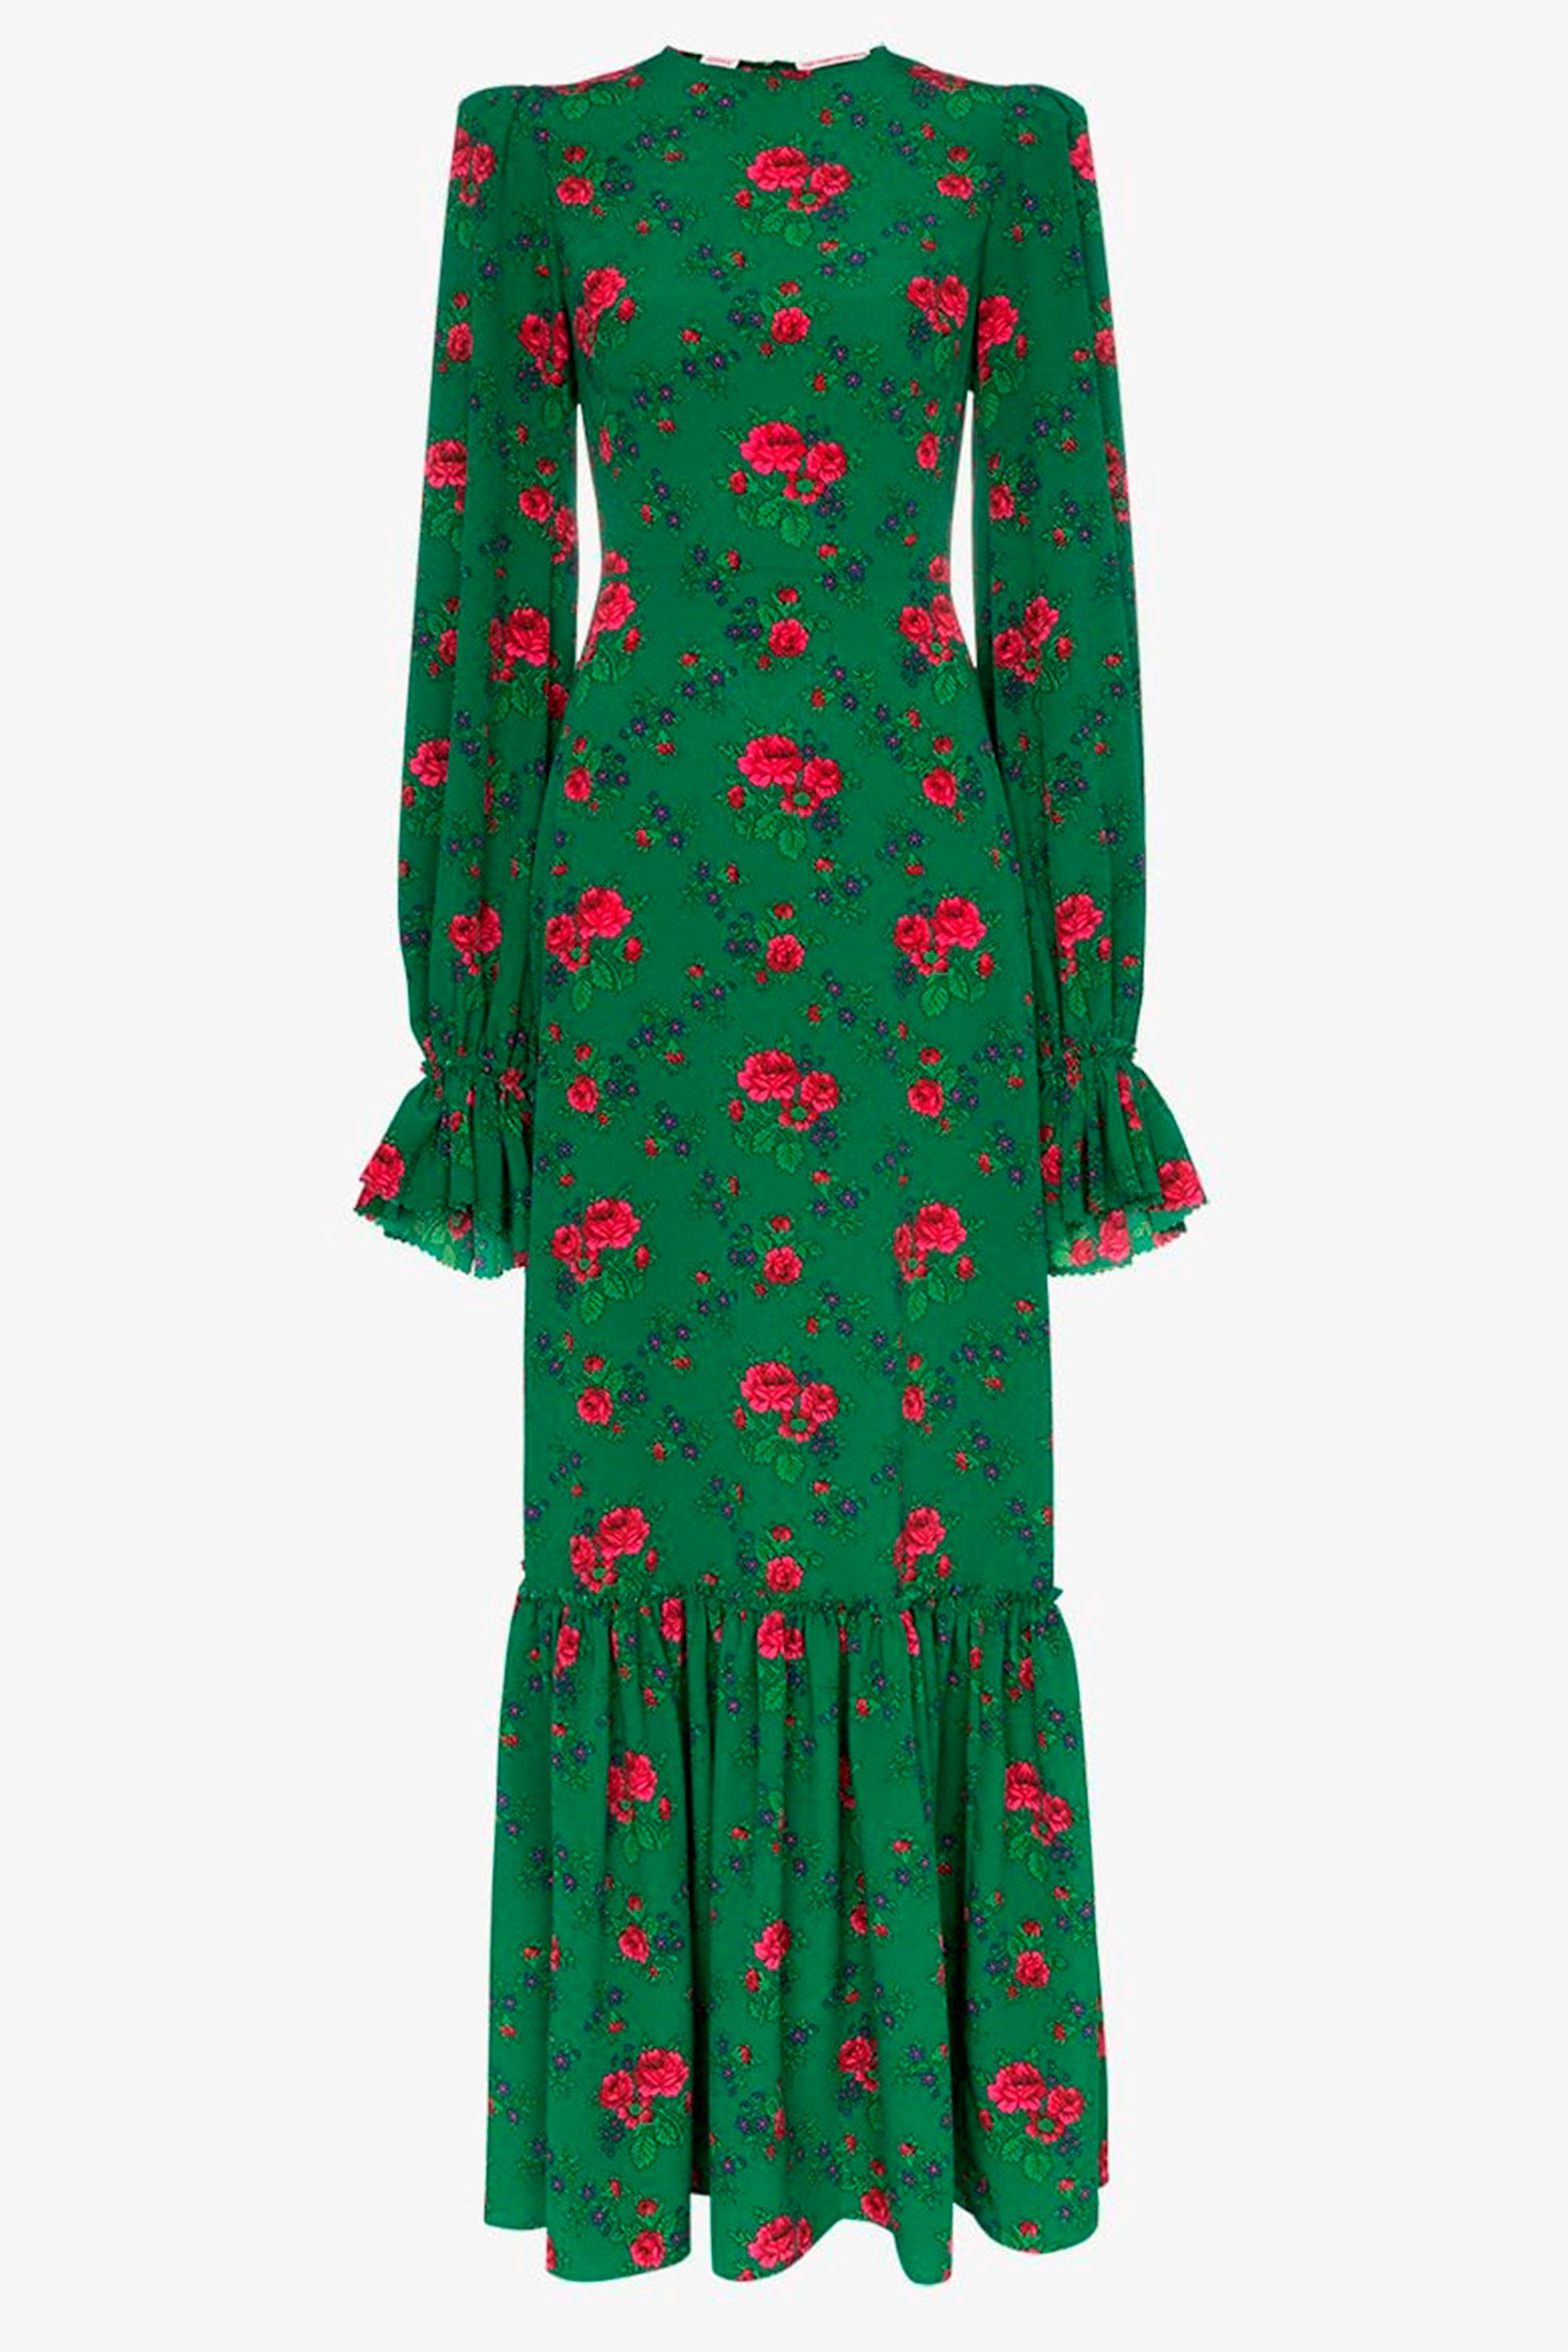 Floral dress for weddings